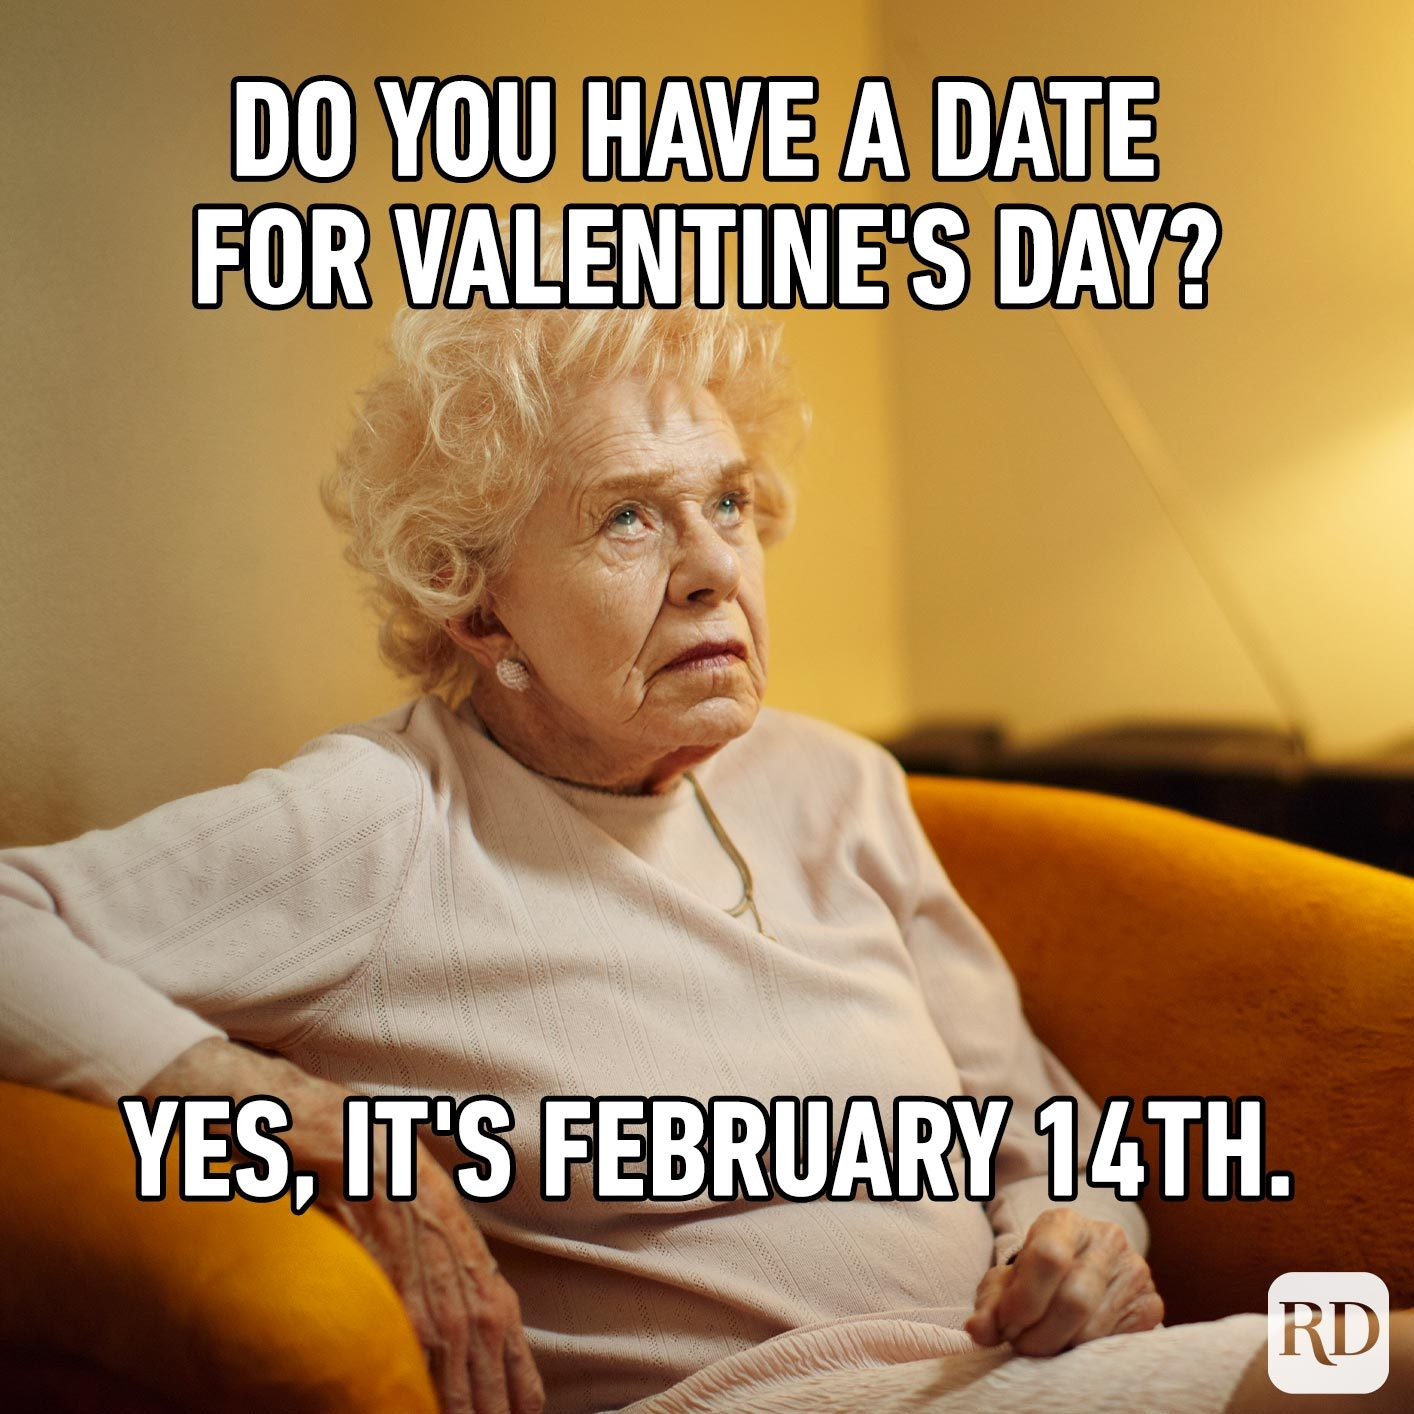 Angry woman. Meme text: Do you have a date for Valentine's Day? Yes, it's February 14th.